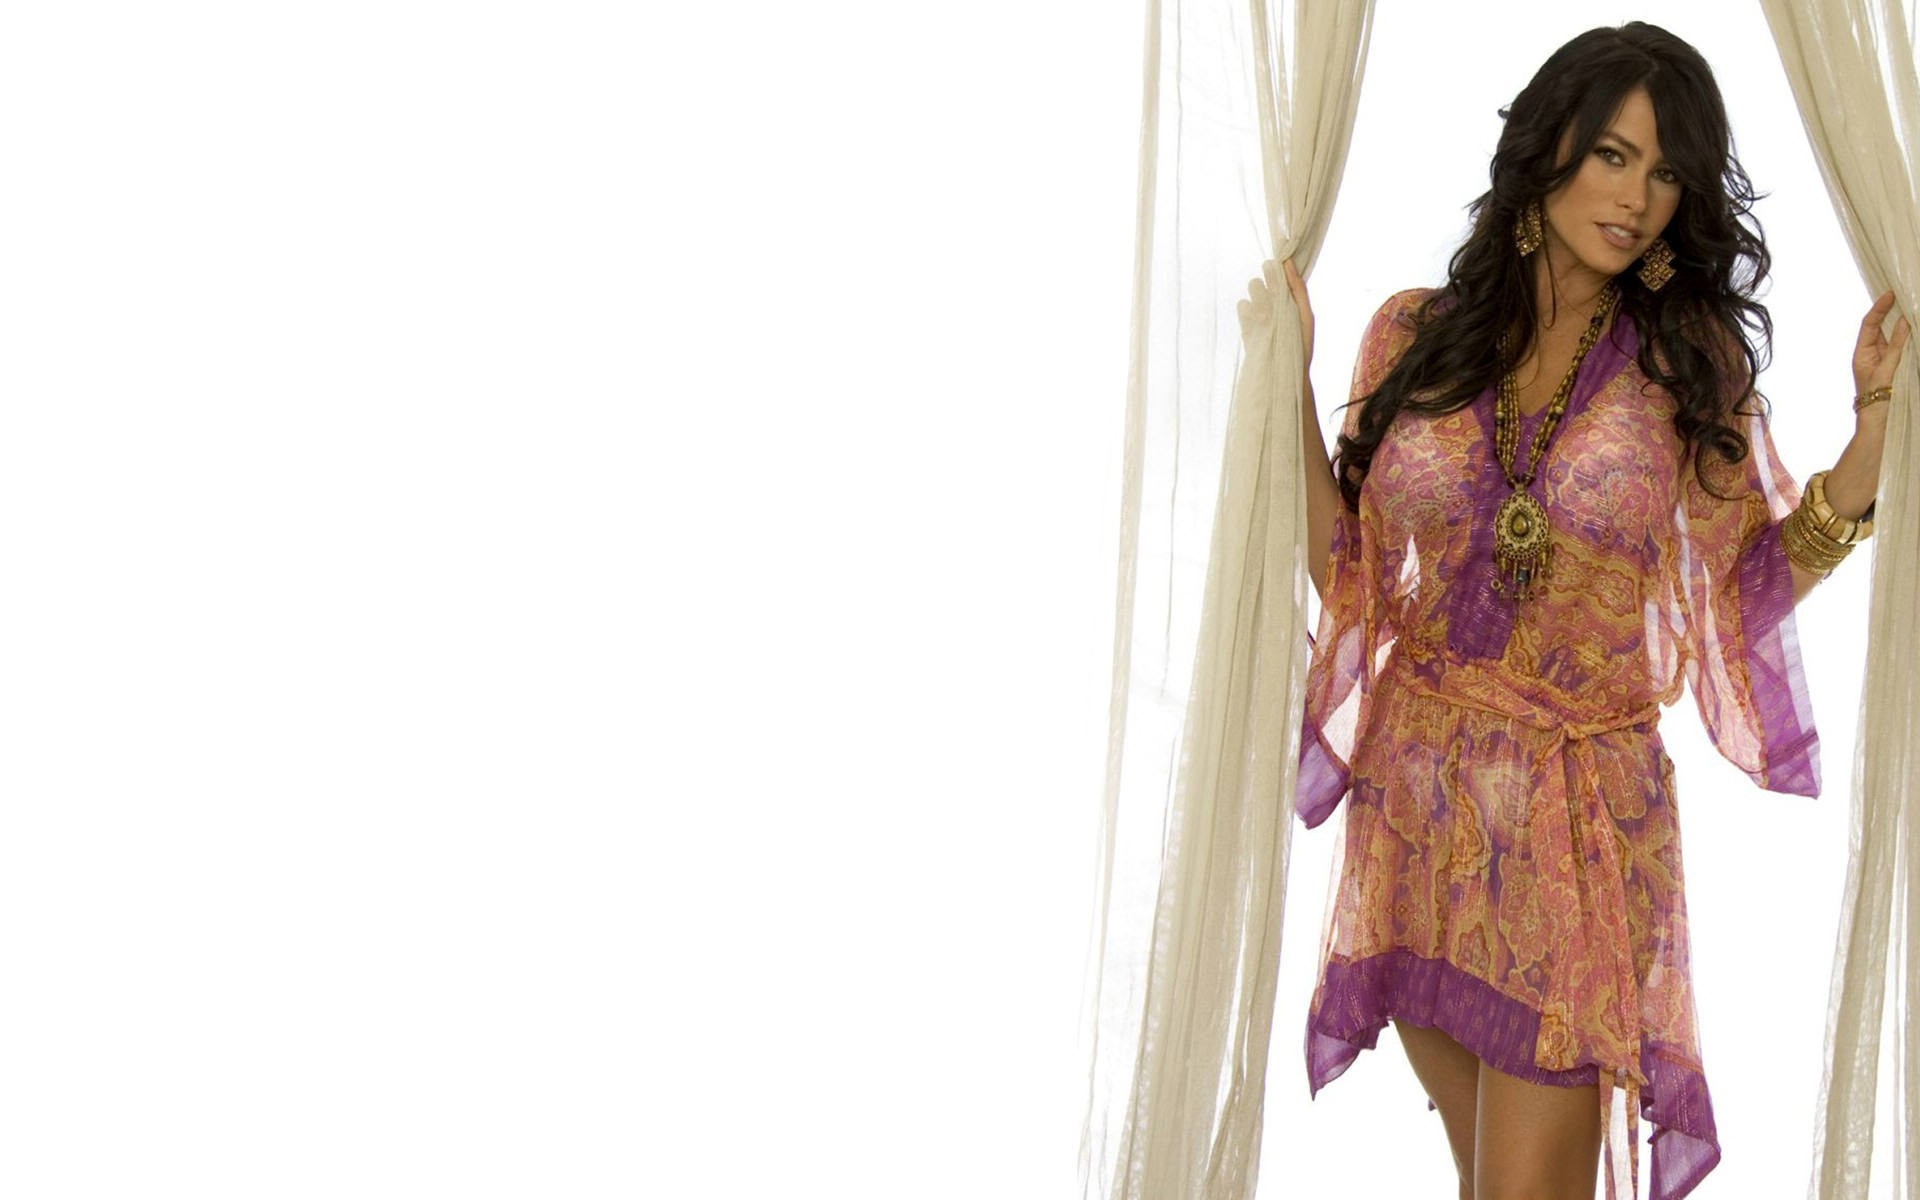 on August 8 2015 By Stephen Comments Off on Sofia Vergara Wallpapers 1920x1200